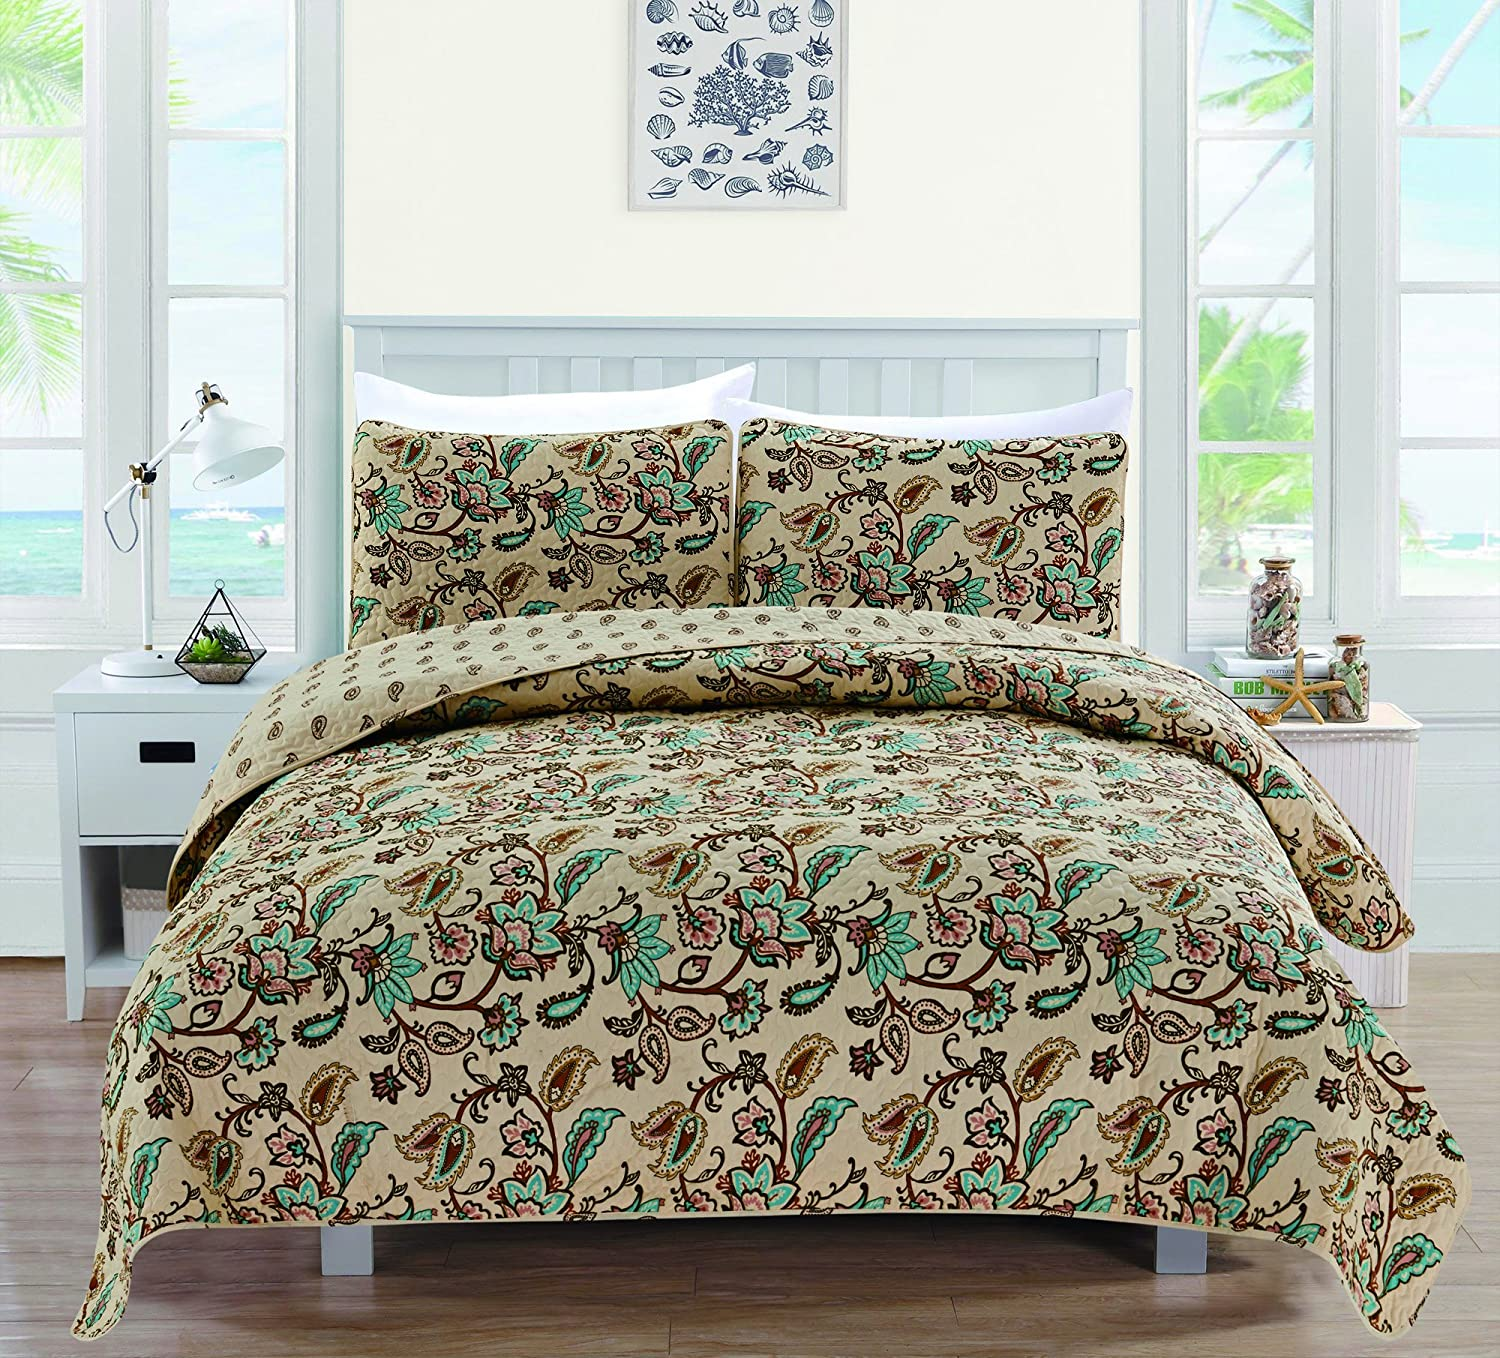 Miranda Collection 3-Piece Luxury Quilt Set with Shams. Soft All-Season Microfiber Reversible Bedspread and Coverlet with Floral Pattern. By Home Fashion Designs Brand. (Twin, Chocolate